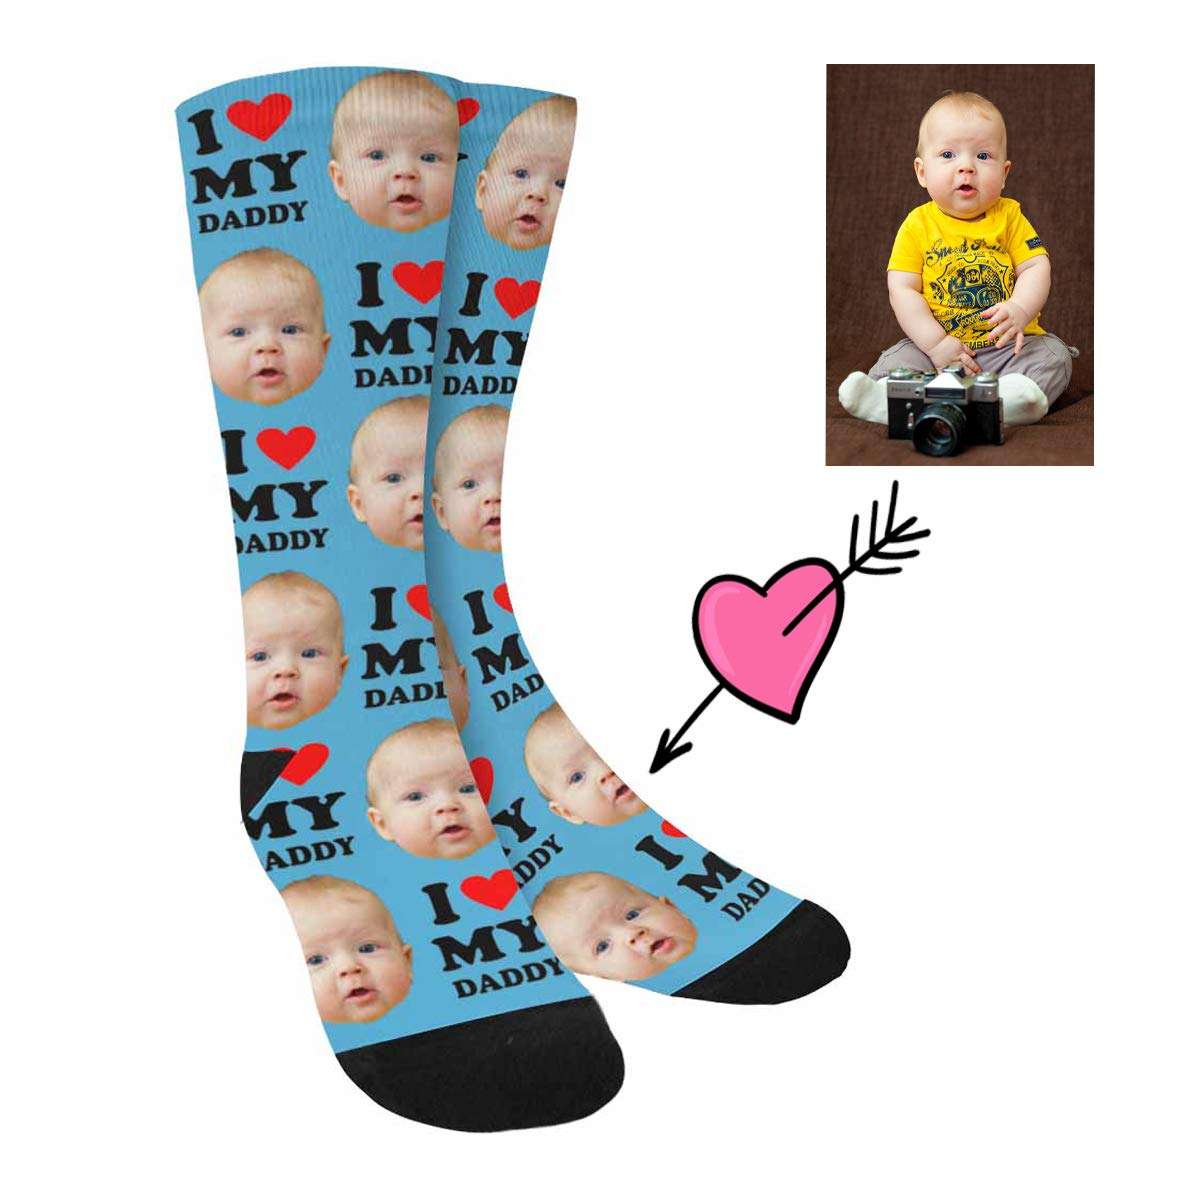 Custom Face Socks,Turn Your Photo Into I Heart My Dad Crew Socks Unisex Gift for Father